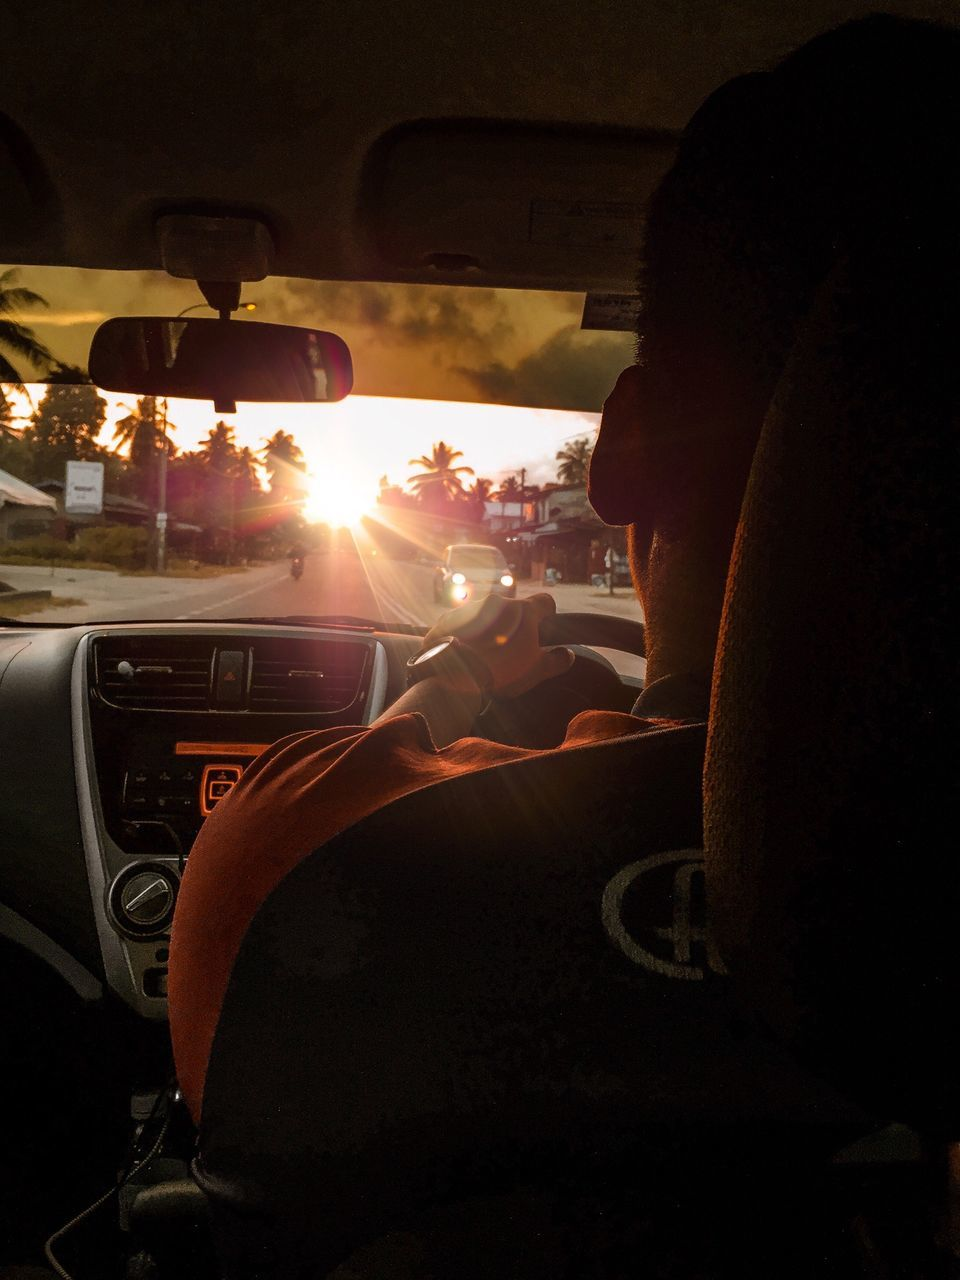 car, mode of transportation, transportation, vehicle interior, motor vehicle, one person, real people, car interior, land vehicle, driving, windshield, men, lifestyles, travel, glass - material, indoors, steering wheel, control panel, rear view, lens flare, road trip